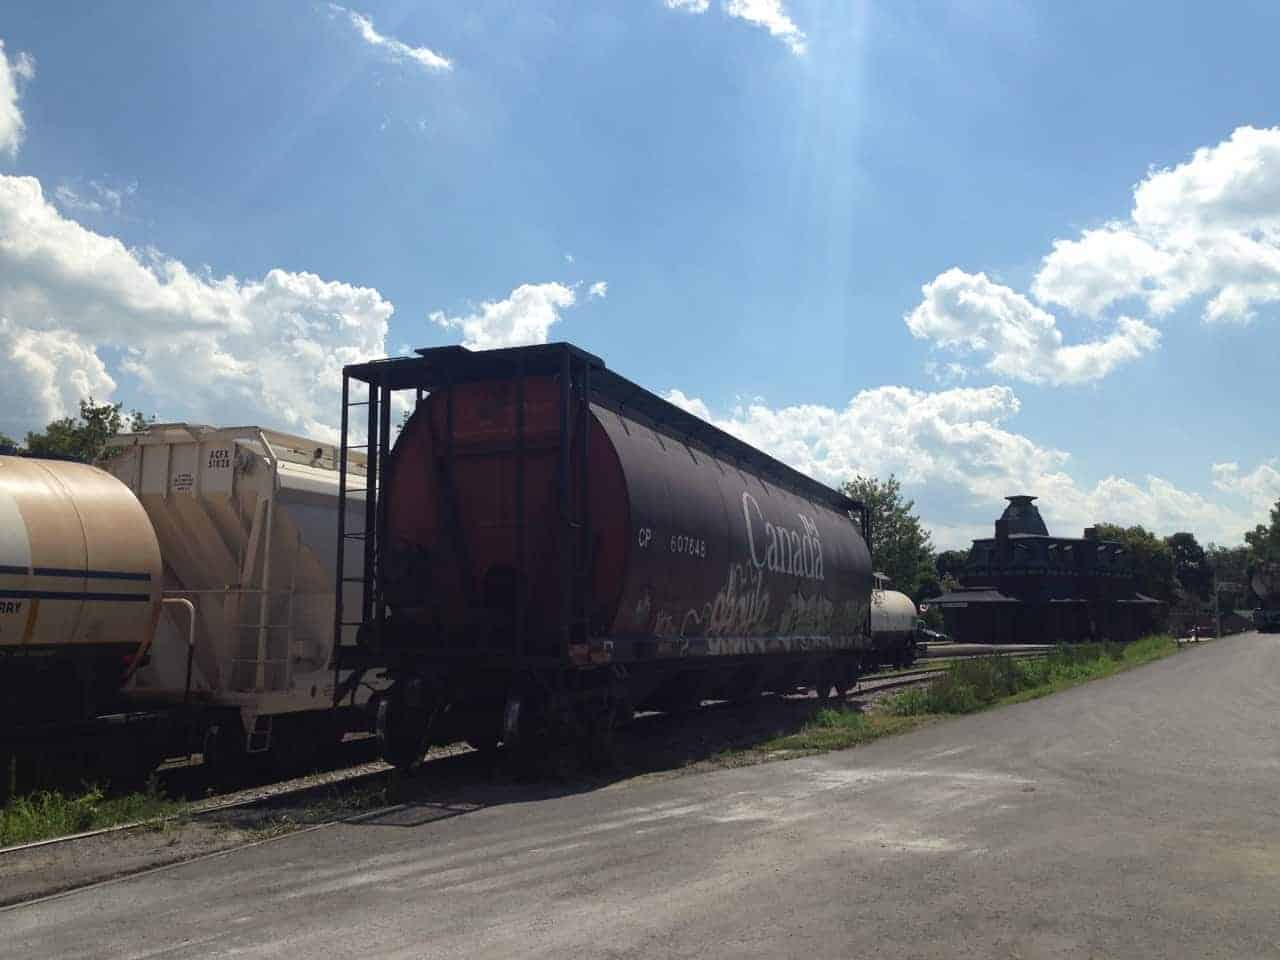 A freight train waits by Whitman's Feed Store in North bennington, Vt. Photo by Kate Abbott